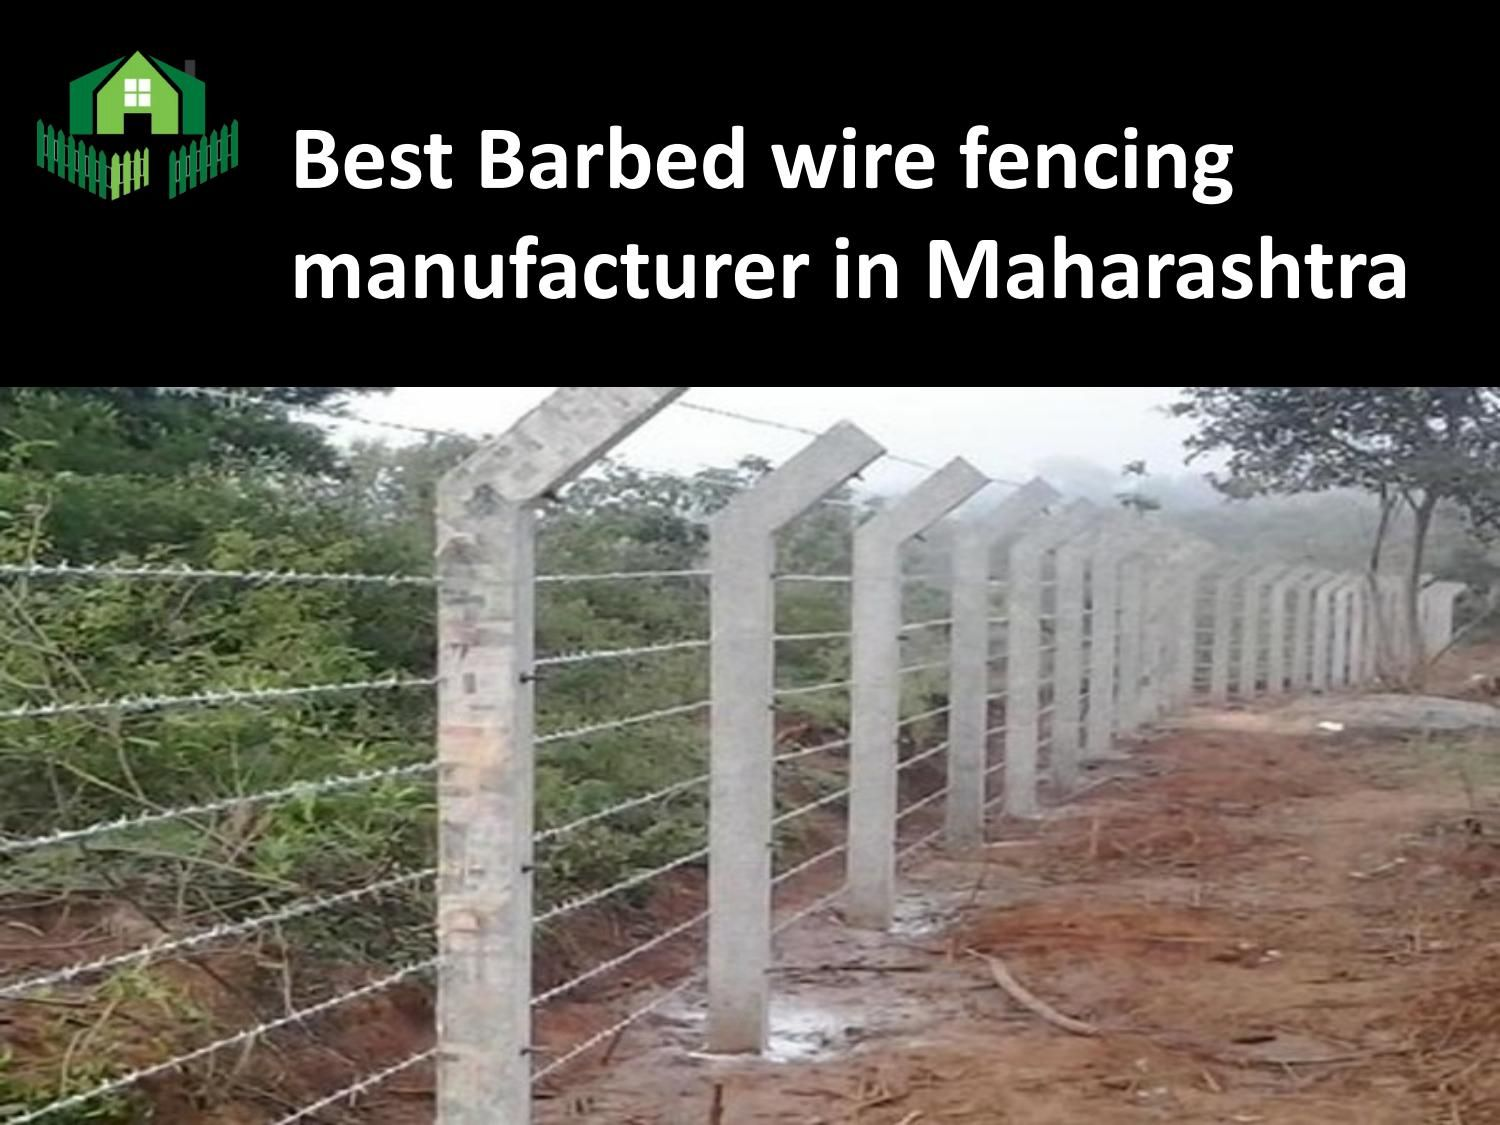 Best barbed wire fencing manufacturer in maharashtra   Barbed wire ...